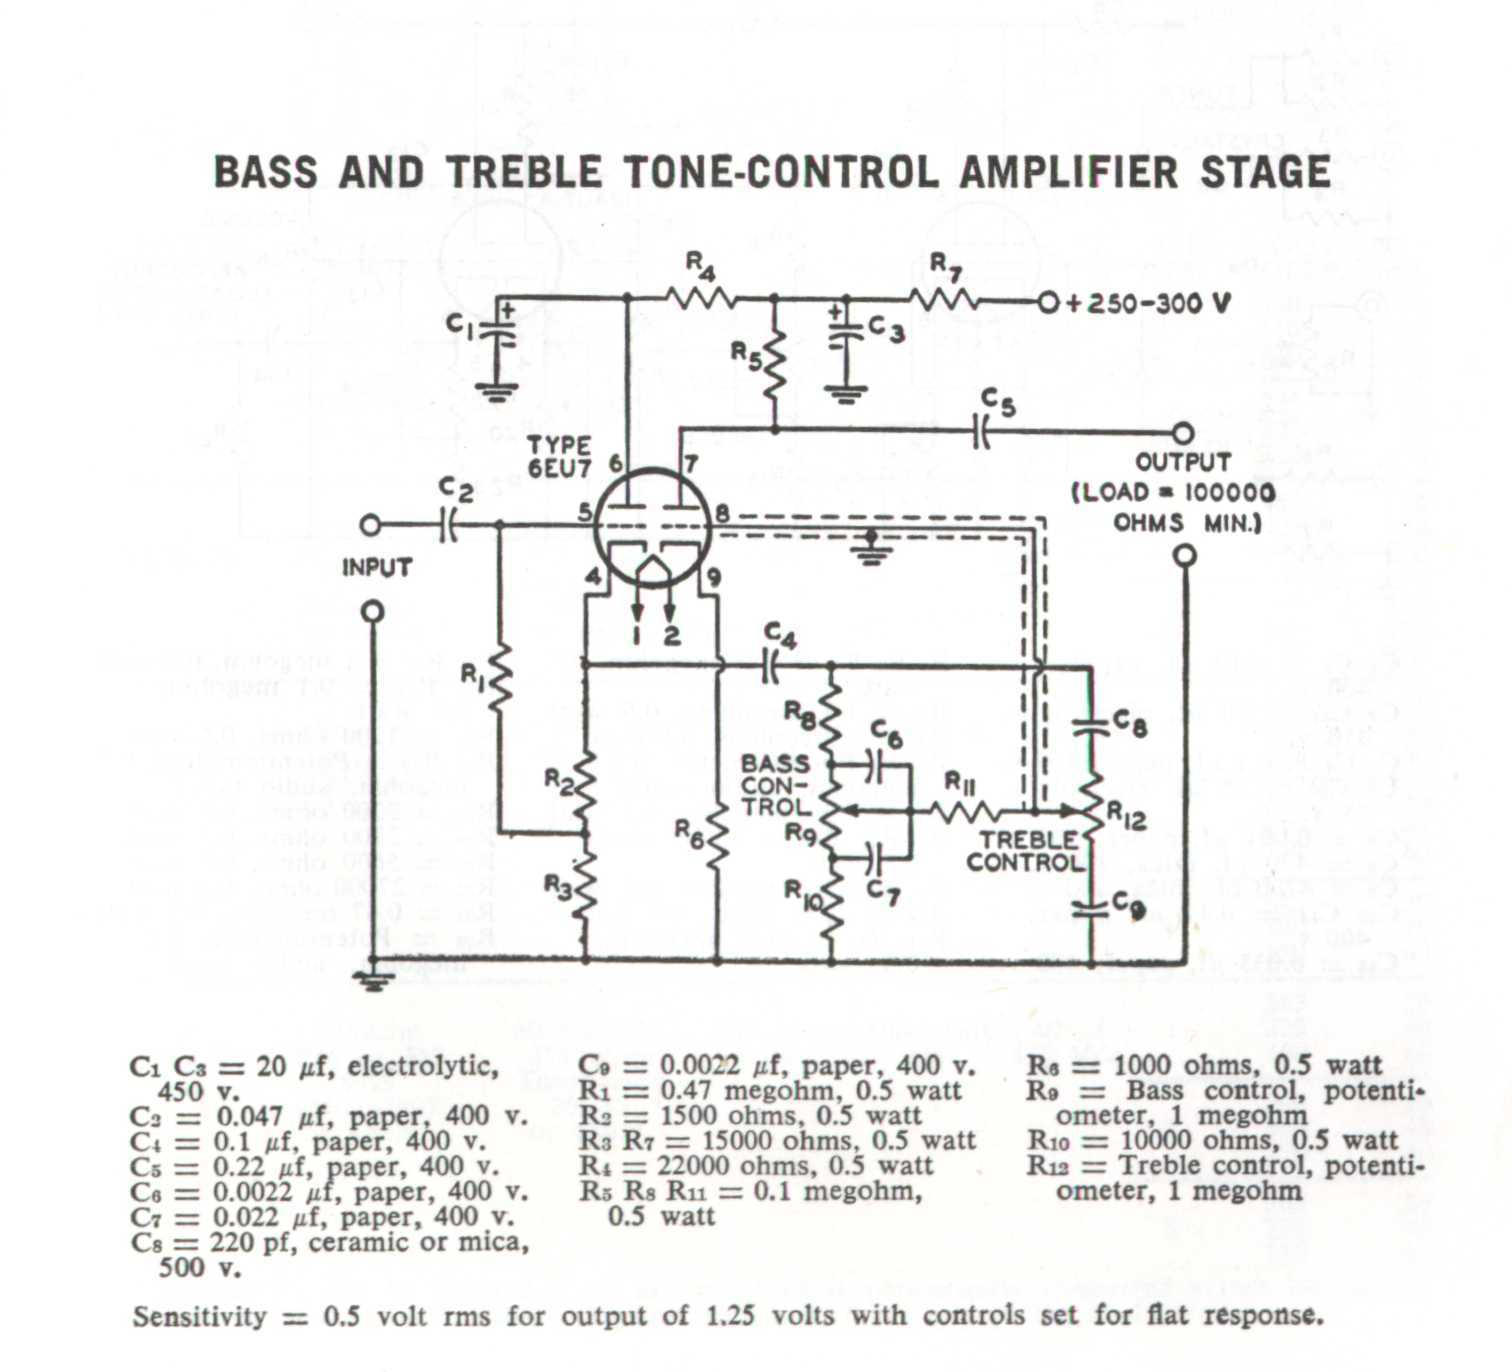 Stereo Tone Control Circuit Diagram T Classic With Low Noise Transistor Rca Amplifier Stage Rc 23 Tube Handbook 1964